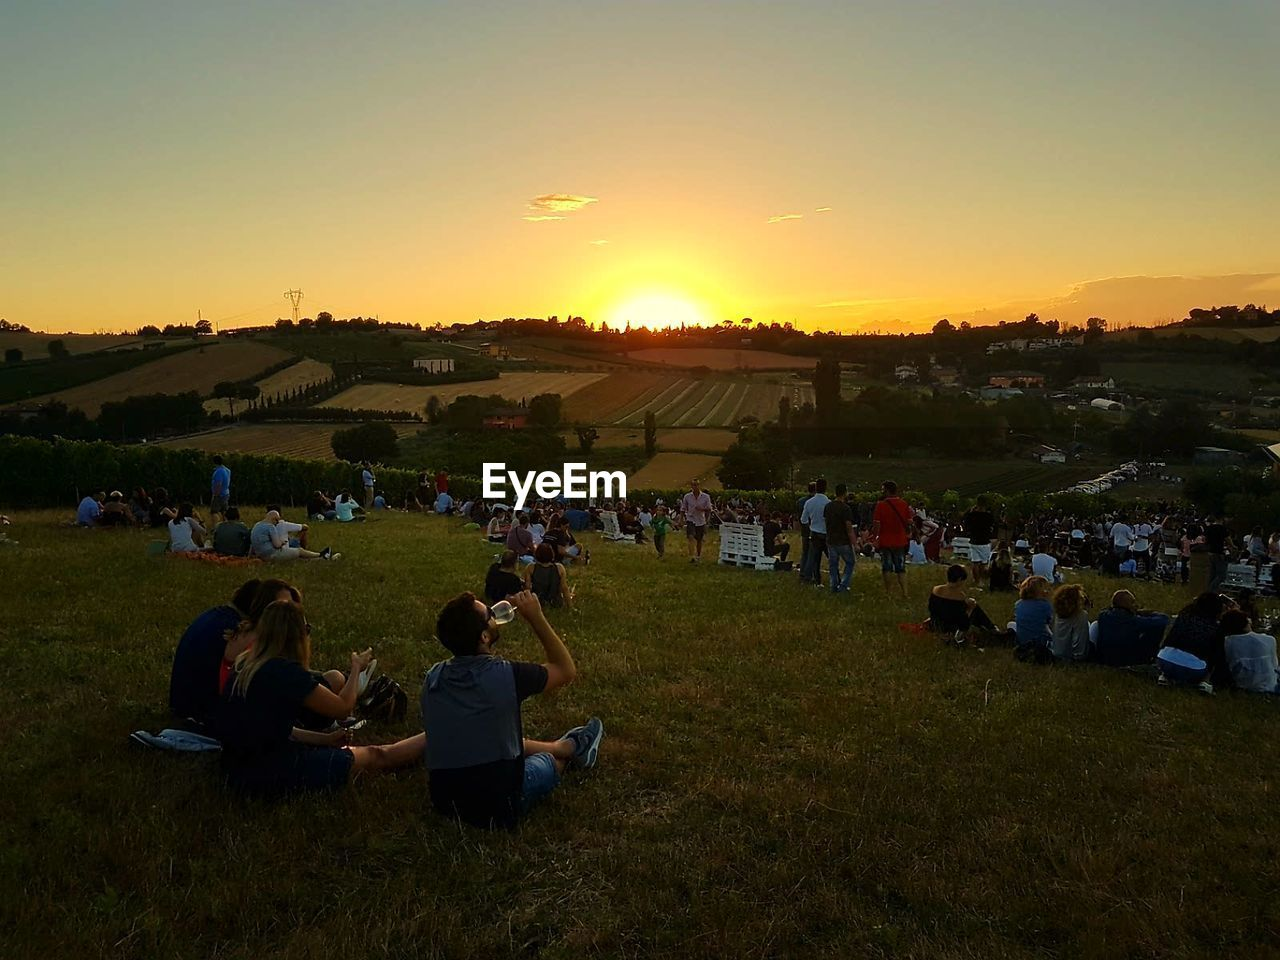 sunset, large group of people, grass, togetherness, real people, leisure activity, nature, relaxation, enjoyment, field, men, sitting, women, landscape, outdoors, lifestyles, beauty in nature, sky, people, adult, adults only, day